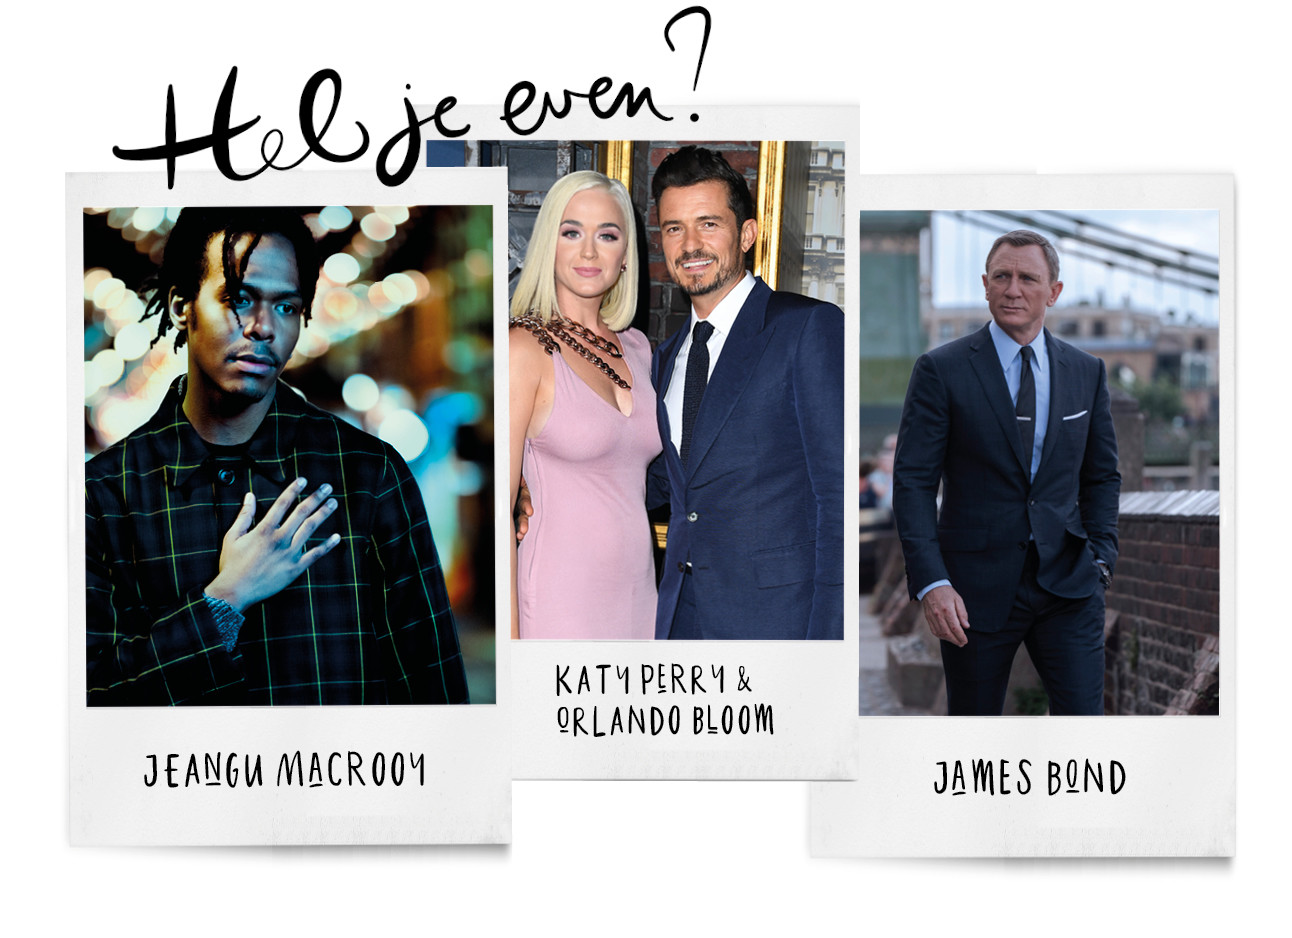 koffiezetpraatjes-songfestival-jamesbond-katy-perry-orlando-bloom